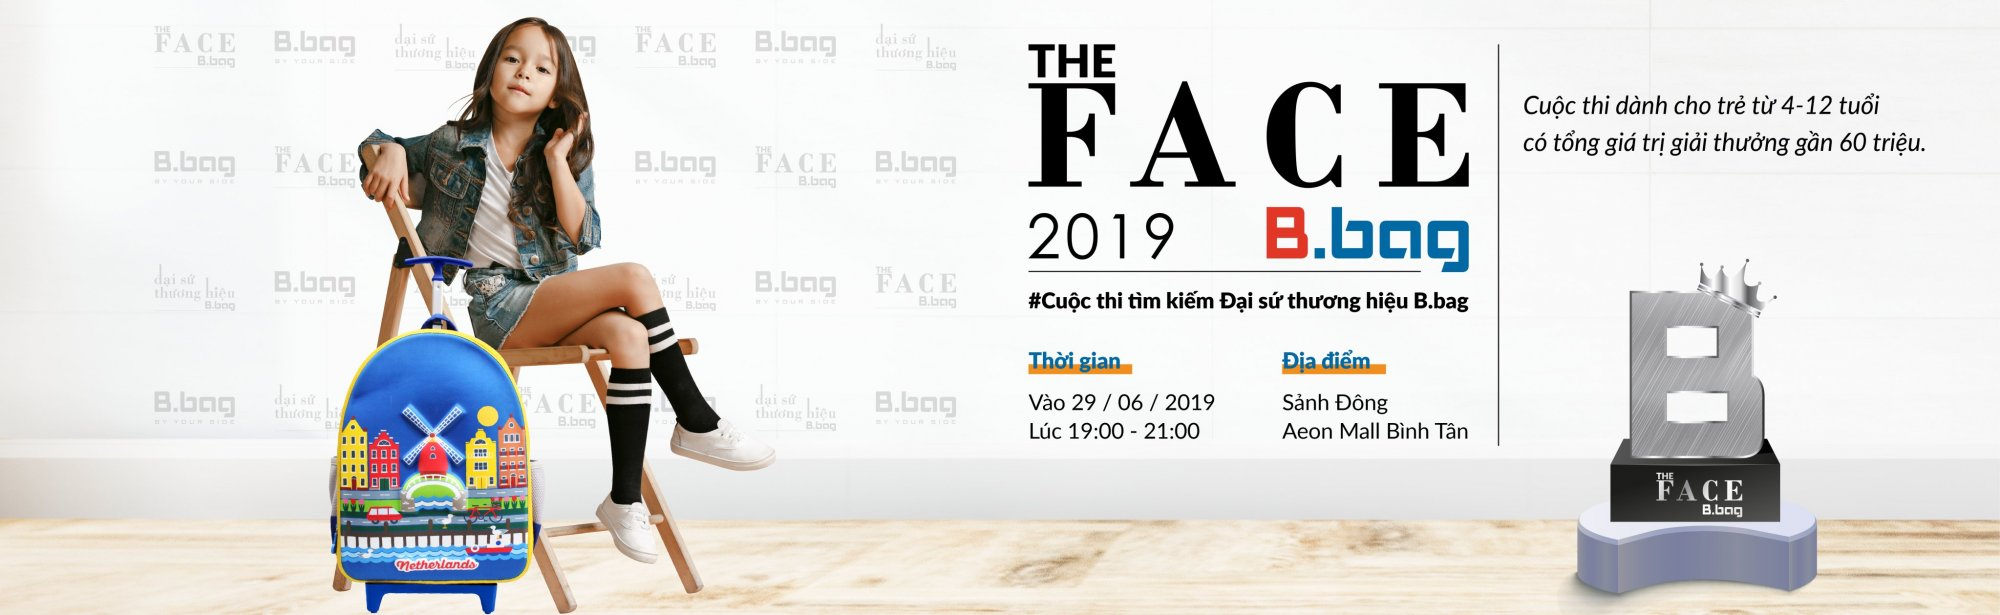 The Face B.bag